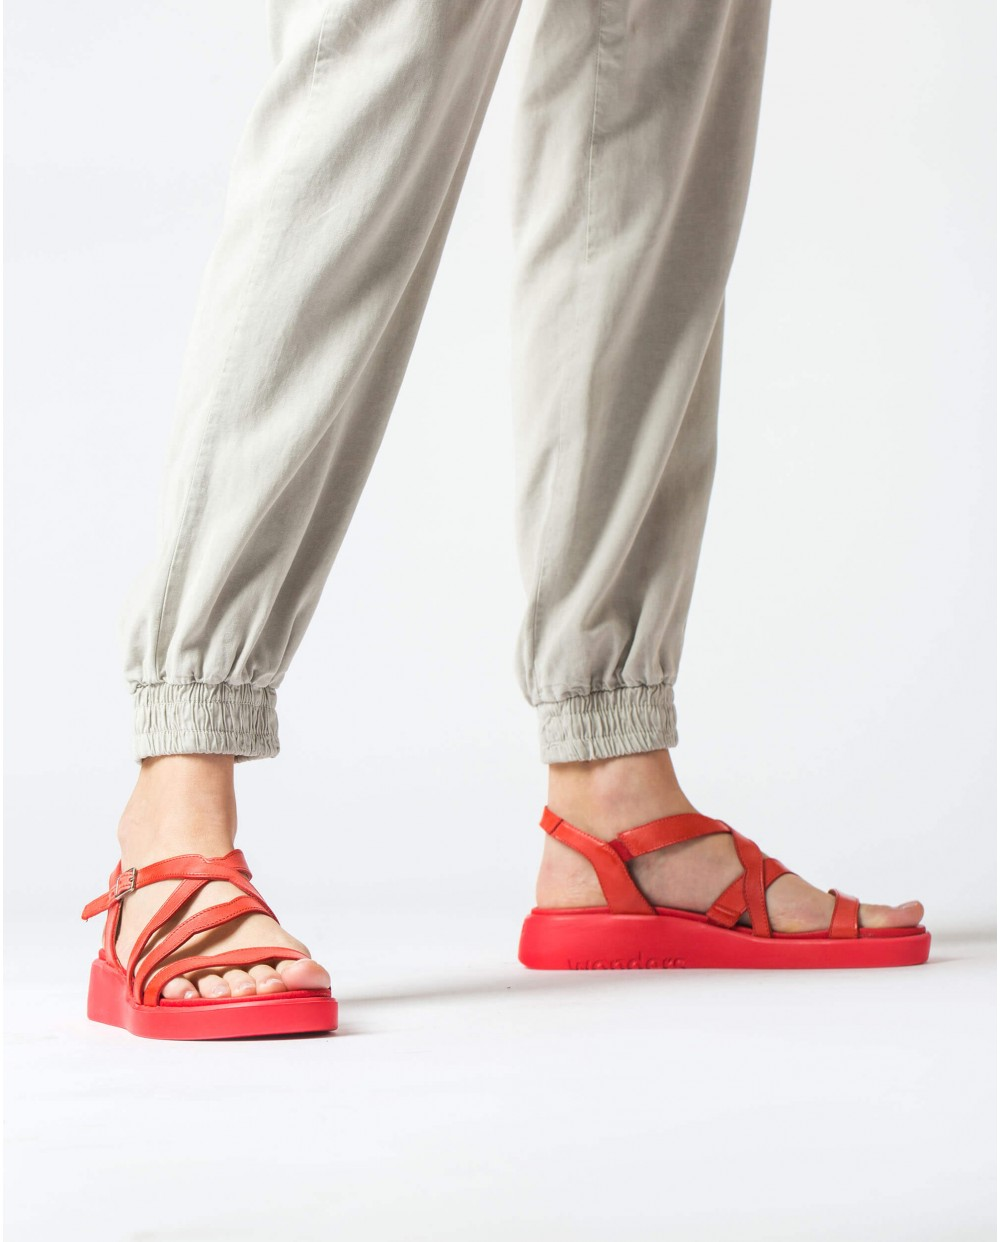 Wonders-Sandals-Flat sandal with waves